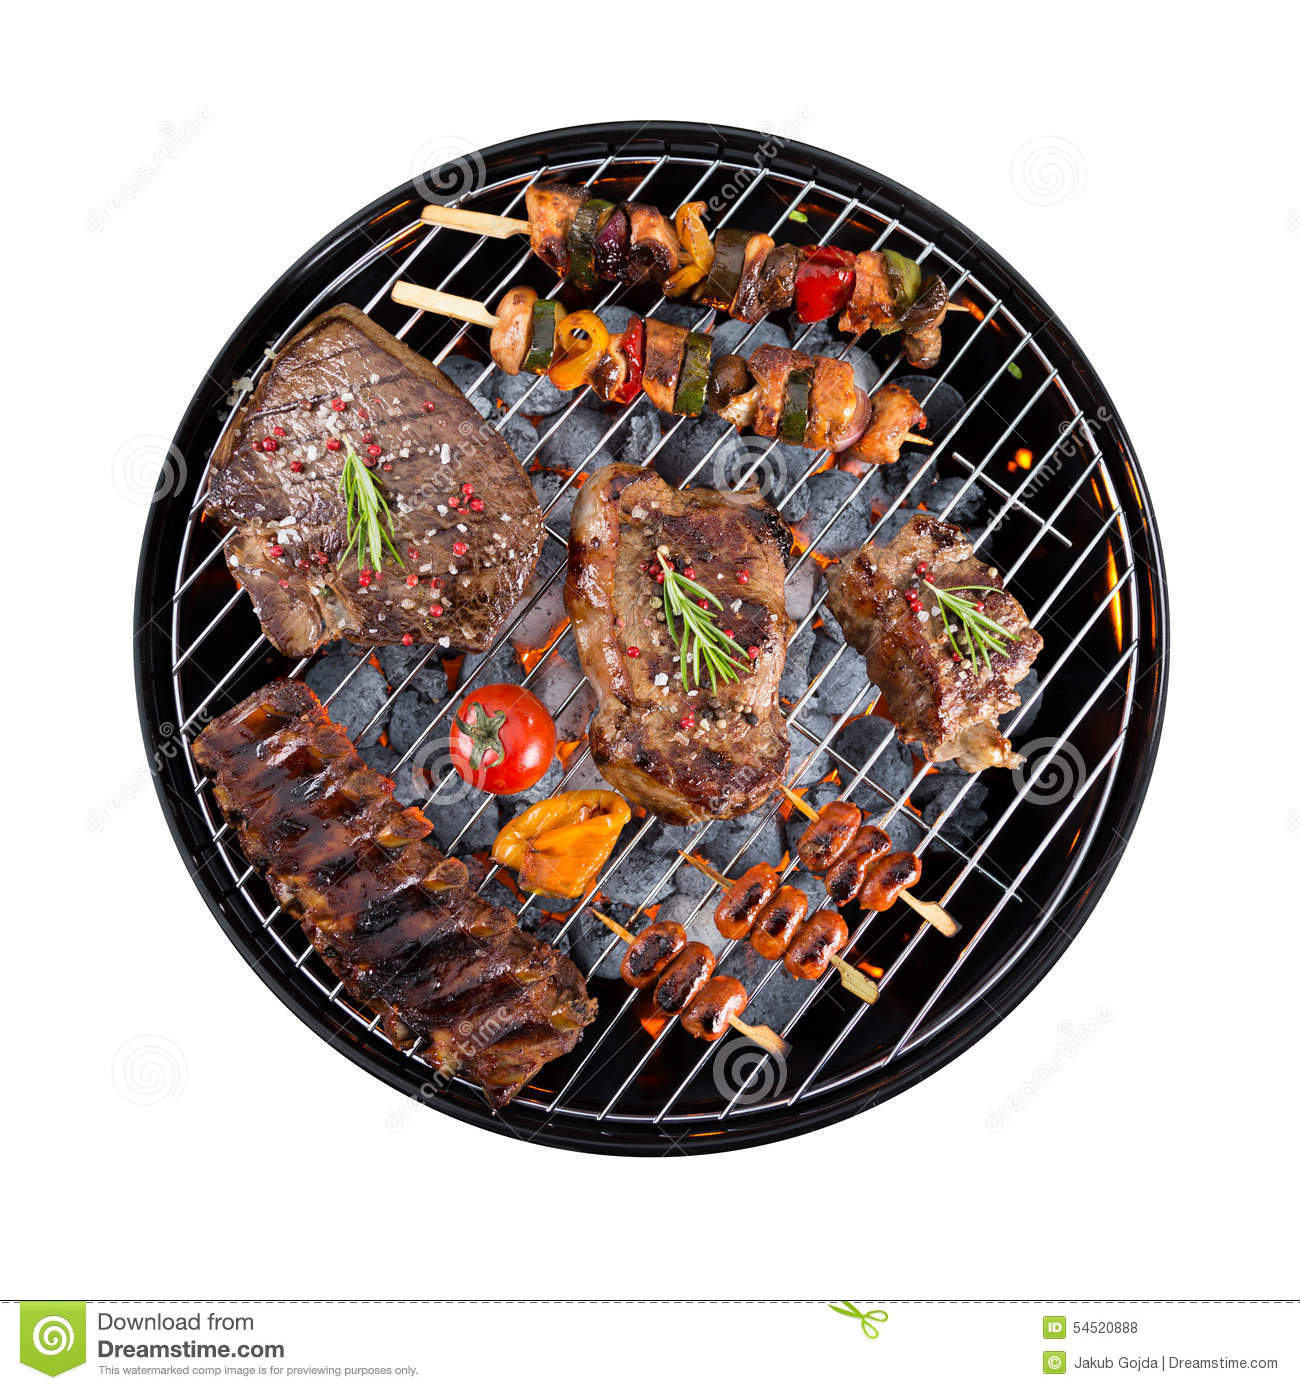 Barbecue Grill With Meat On White Background Stock Photo ...